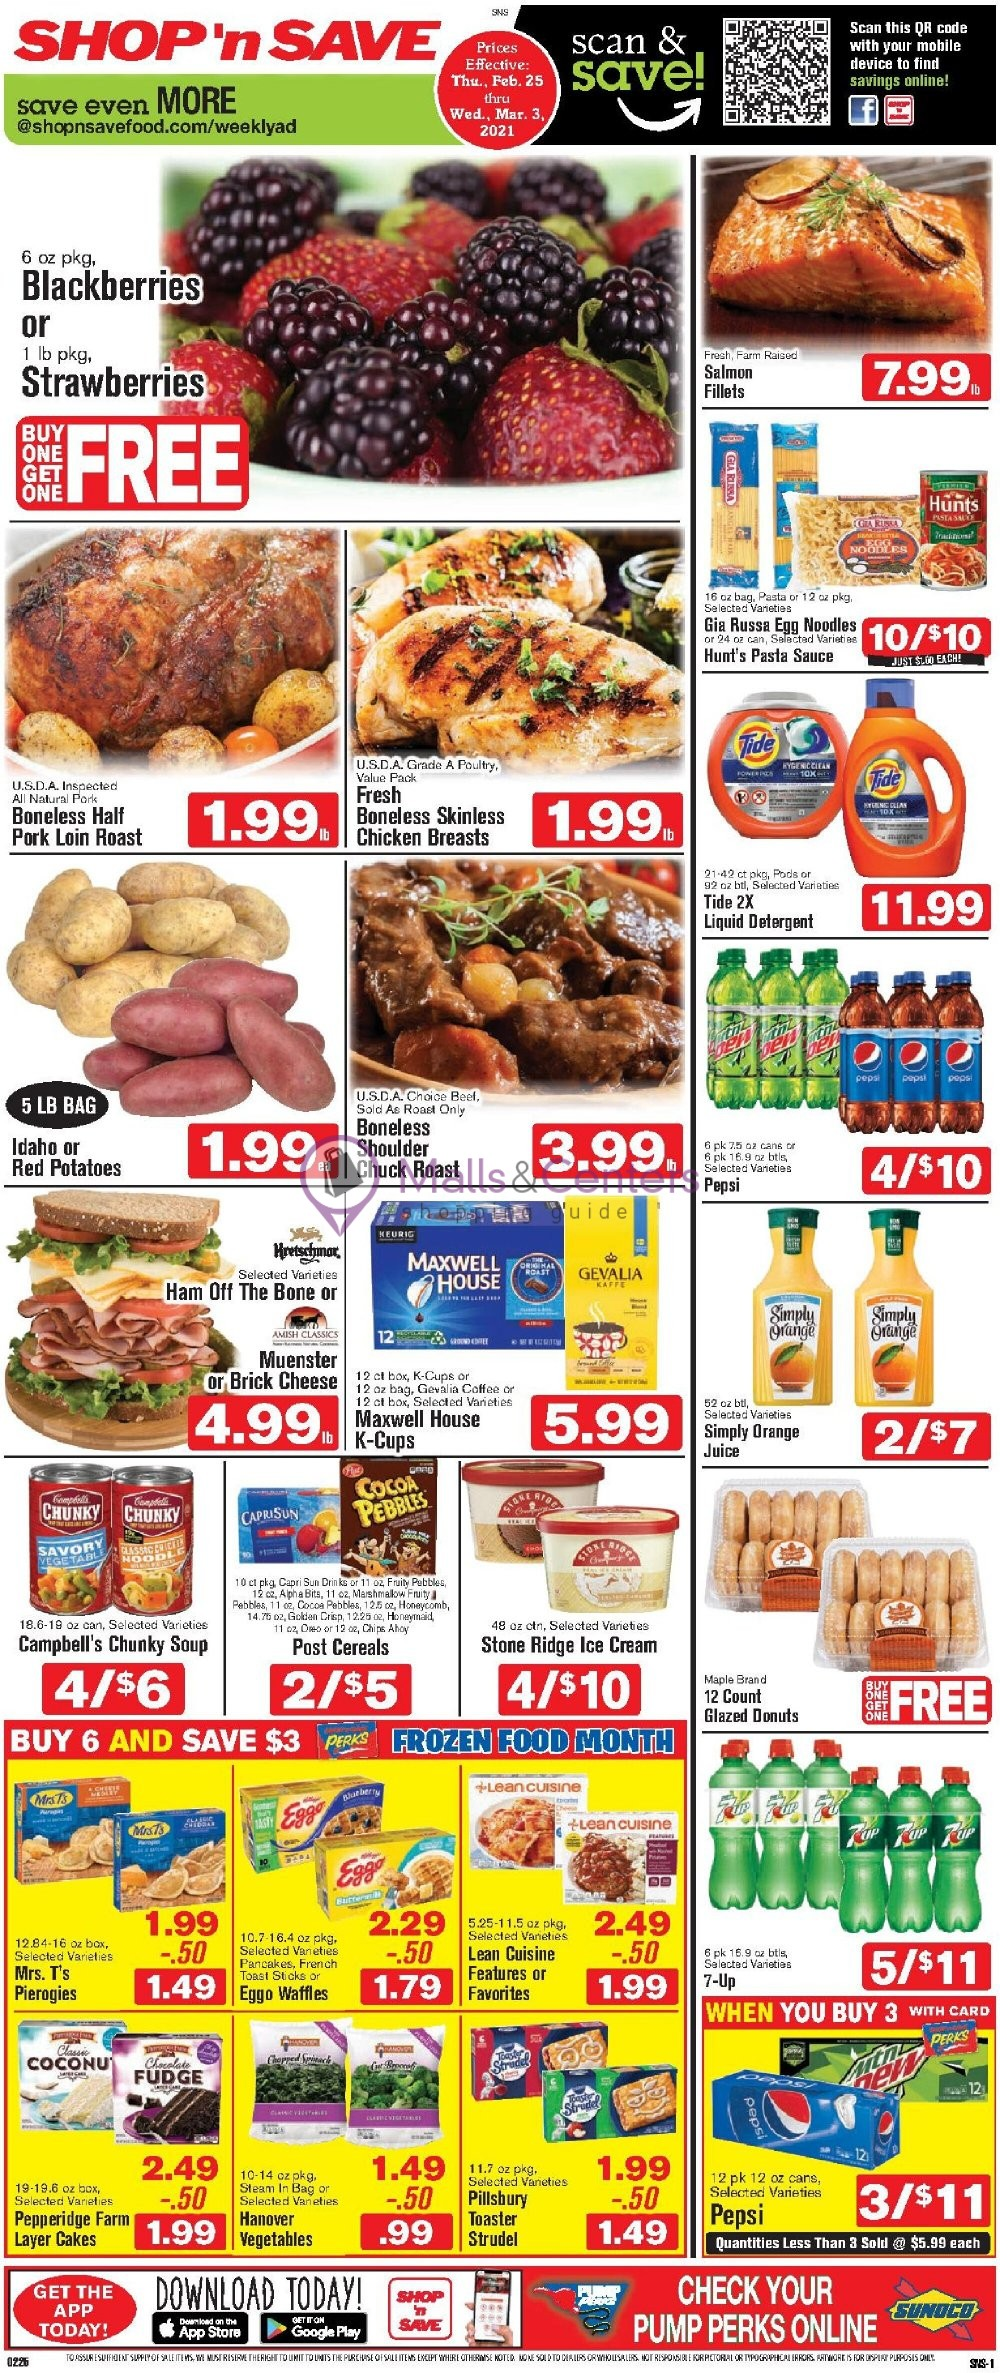 weekly ads SHOP 'n SAVE - page 1 - mallscenters.com